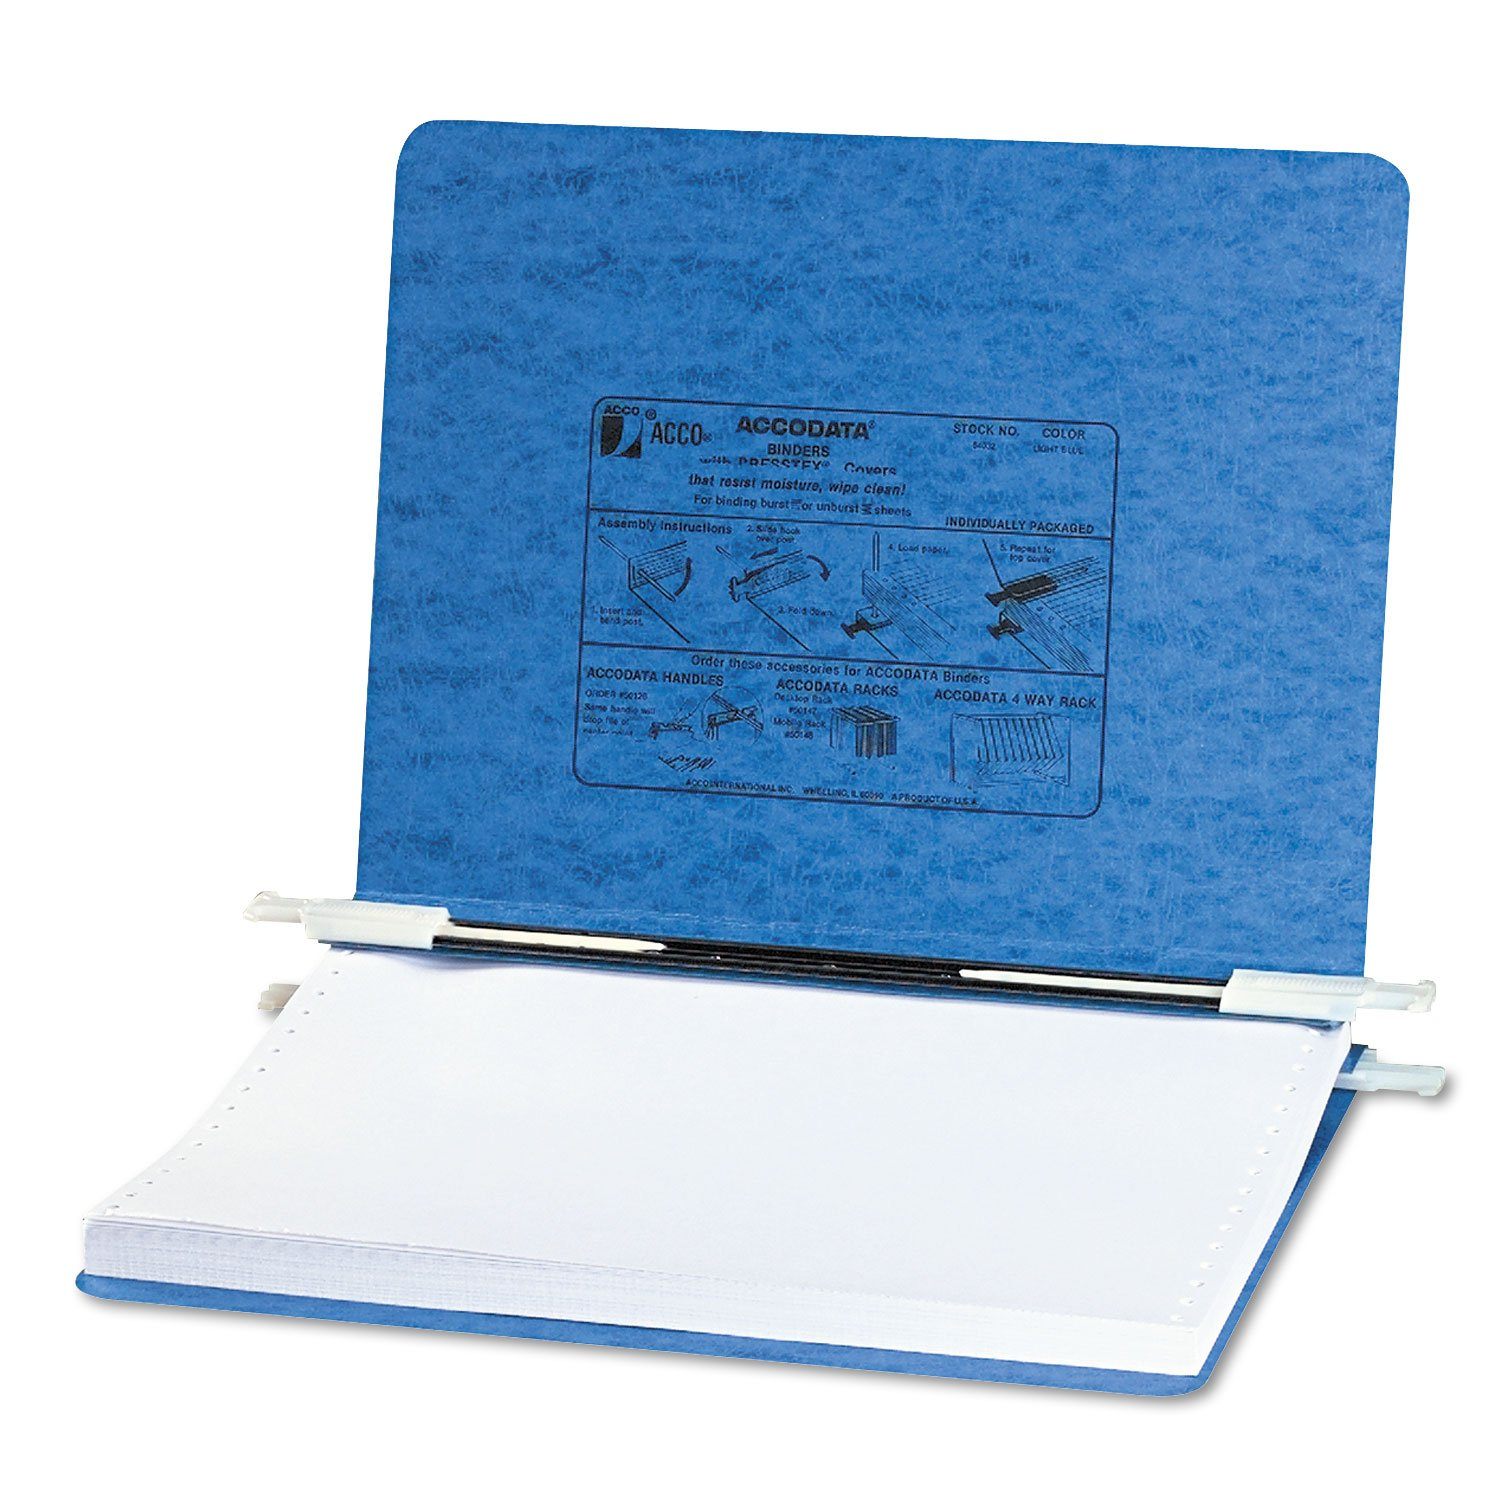 ACCO 54032 Data Processing Binder, 6'' Cap, 11-3/4''x8-1/2'', Light Blue by Office Realm (Image #1)